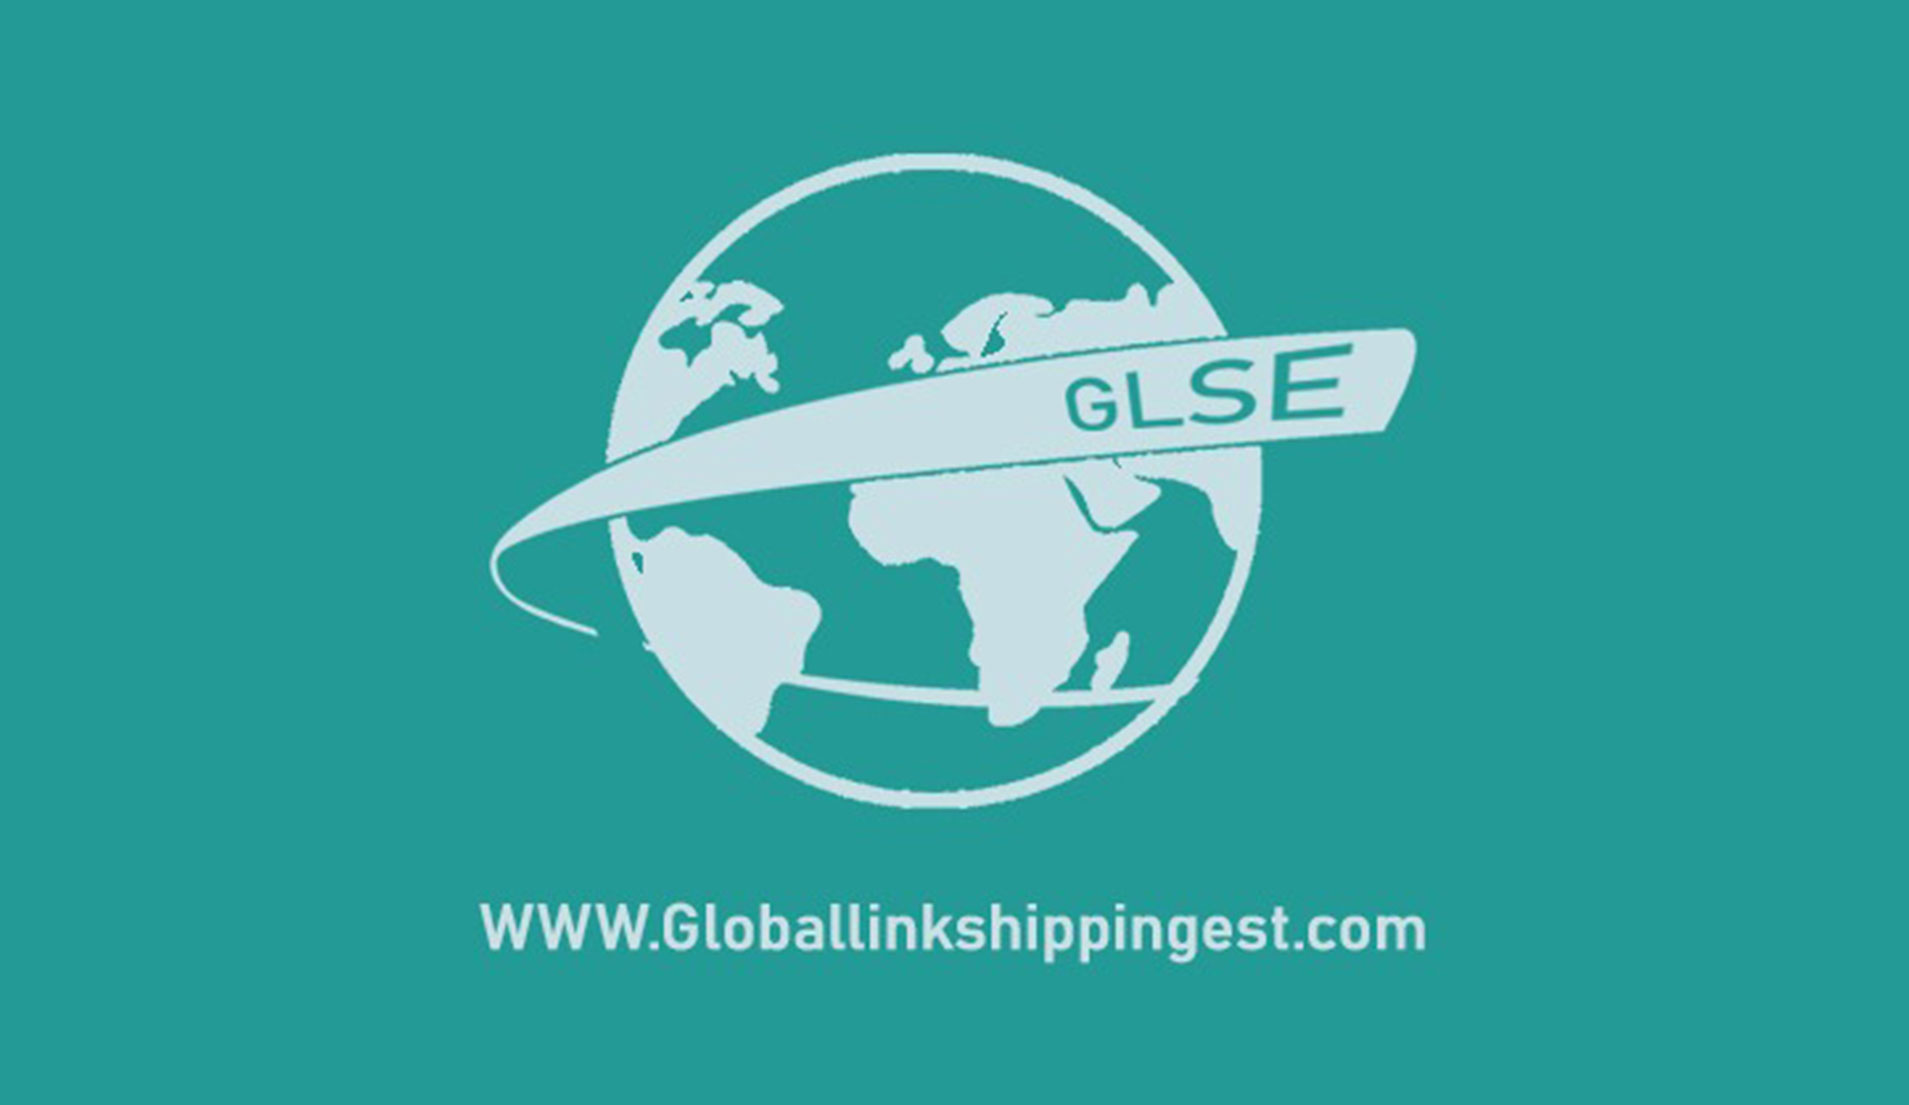 Global Link Shipping Est. – Dammam